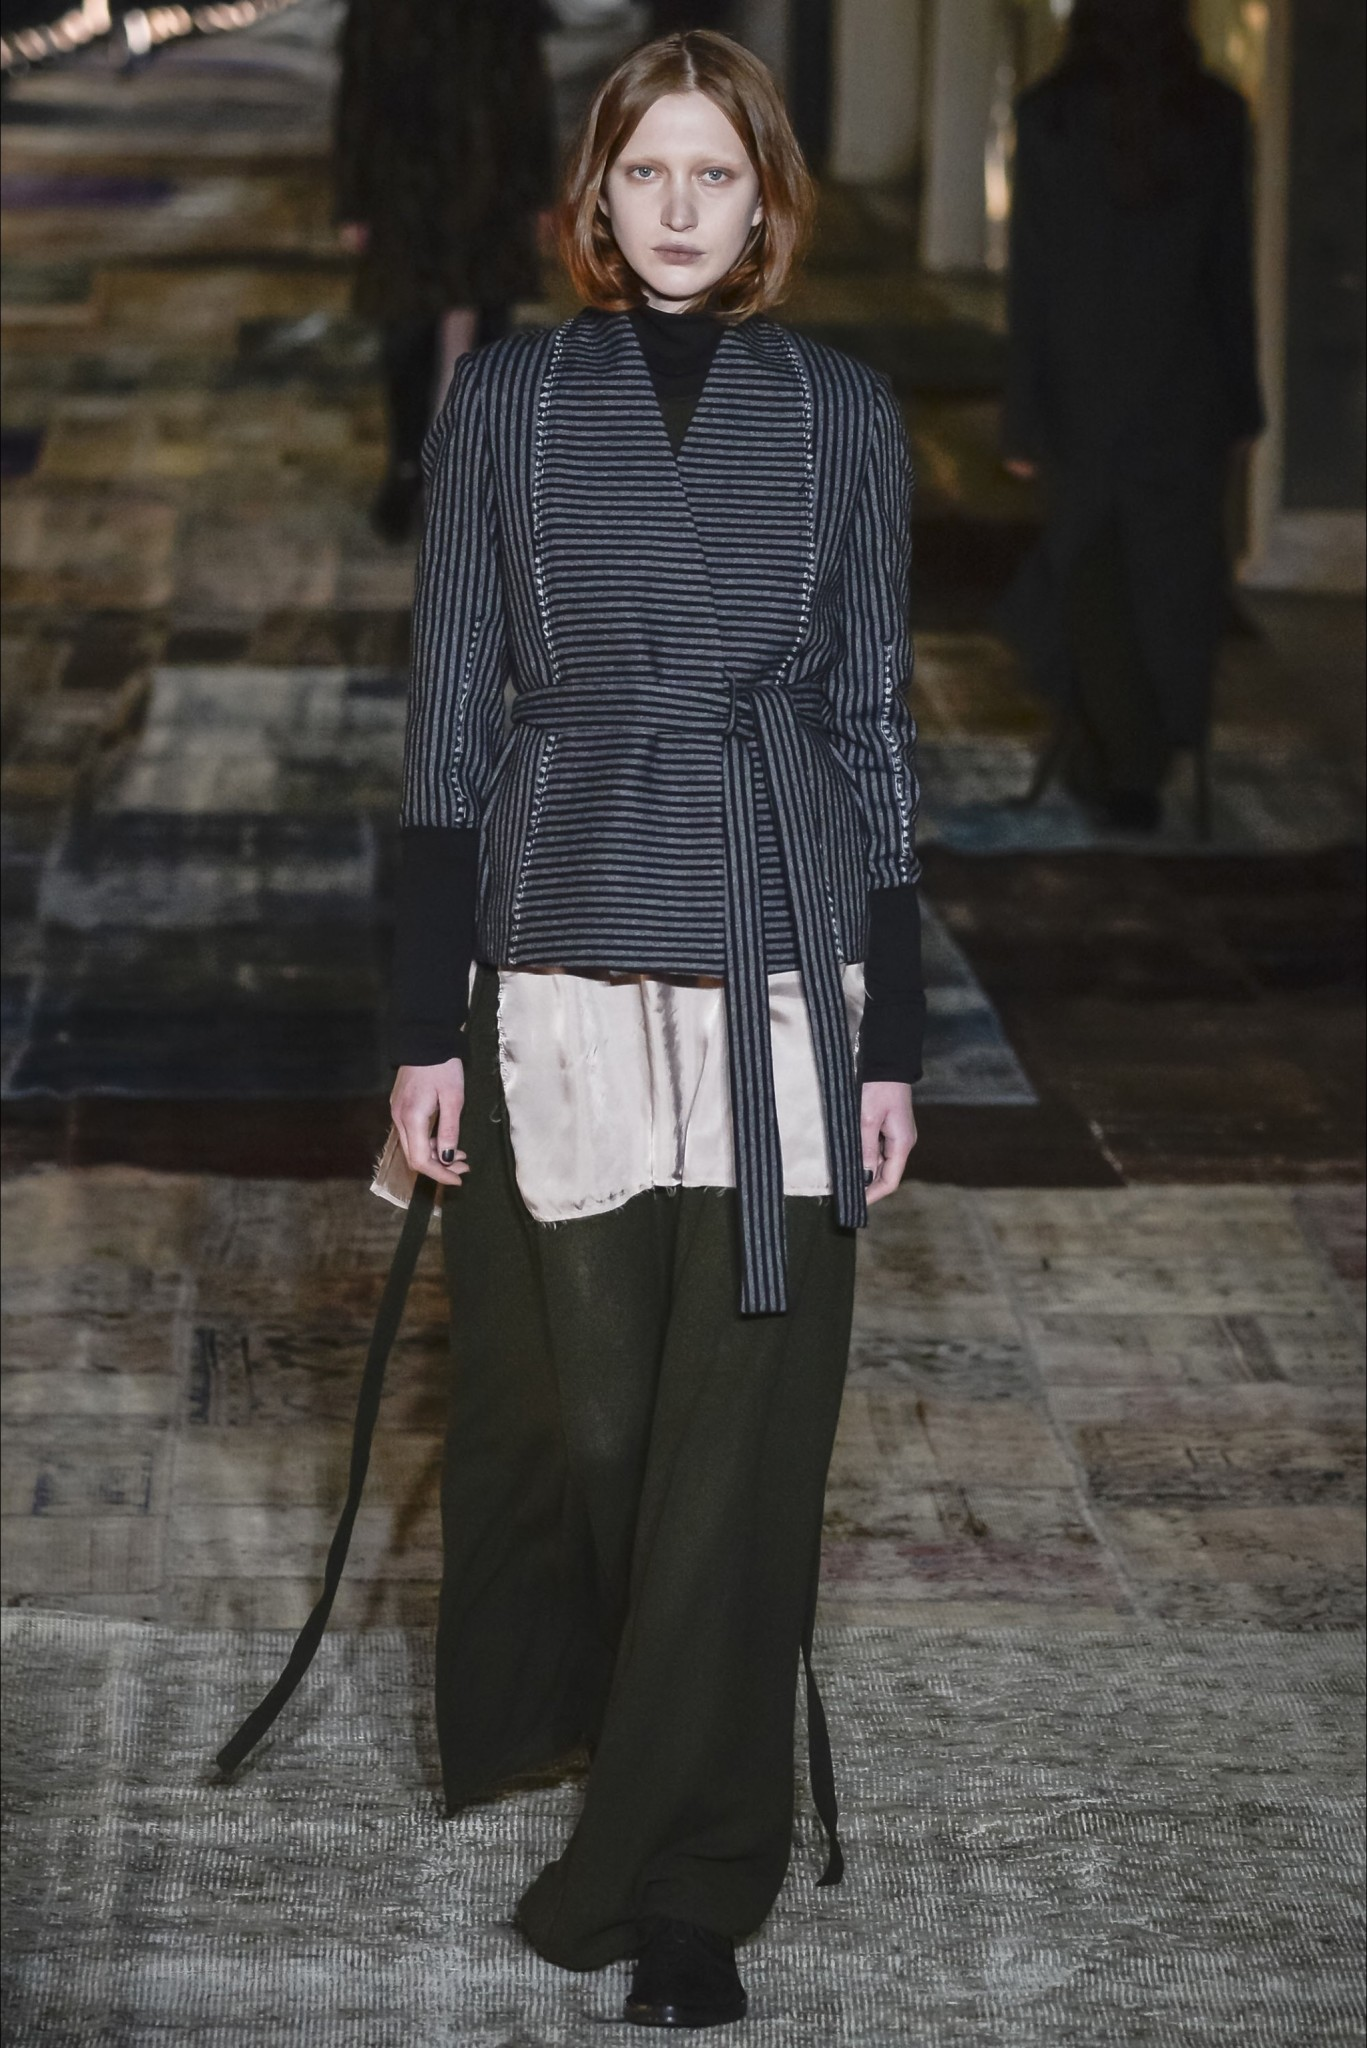 fabulous_muses_layered-look-damir-doma_fall_winter_2016